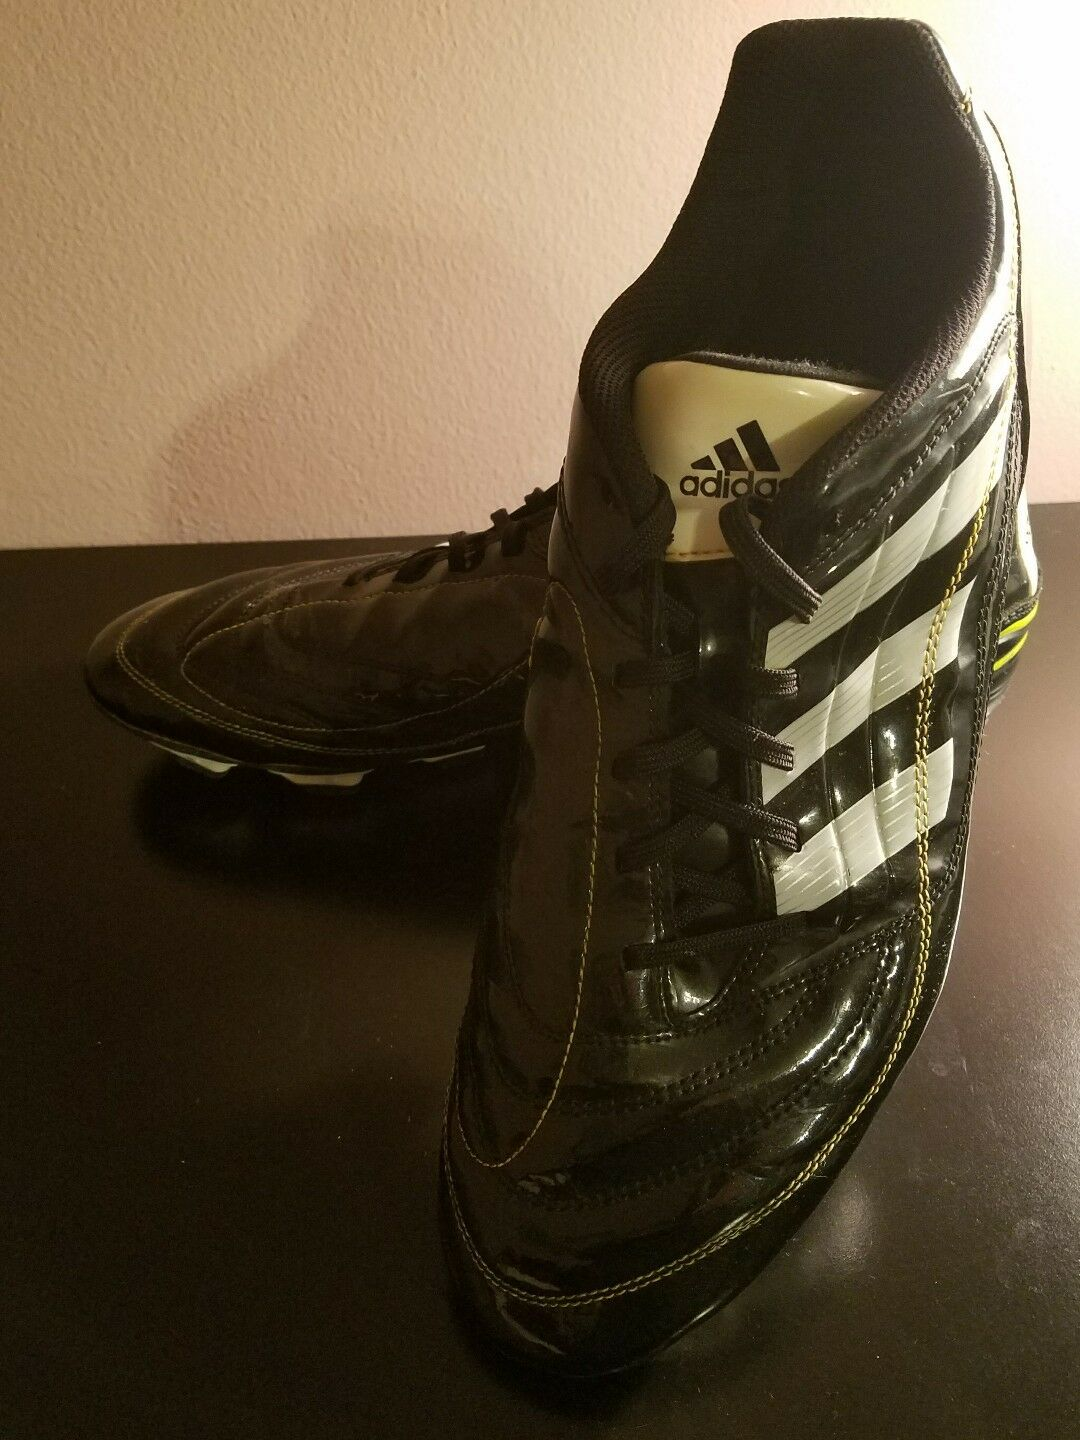 Adidas Men's Black w/White Stripes Cleats Comfortable best-selling model of the brand